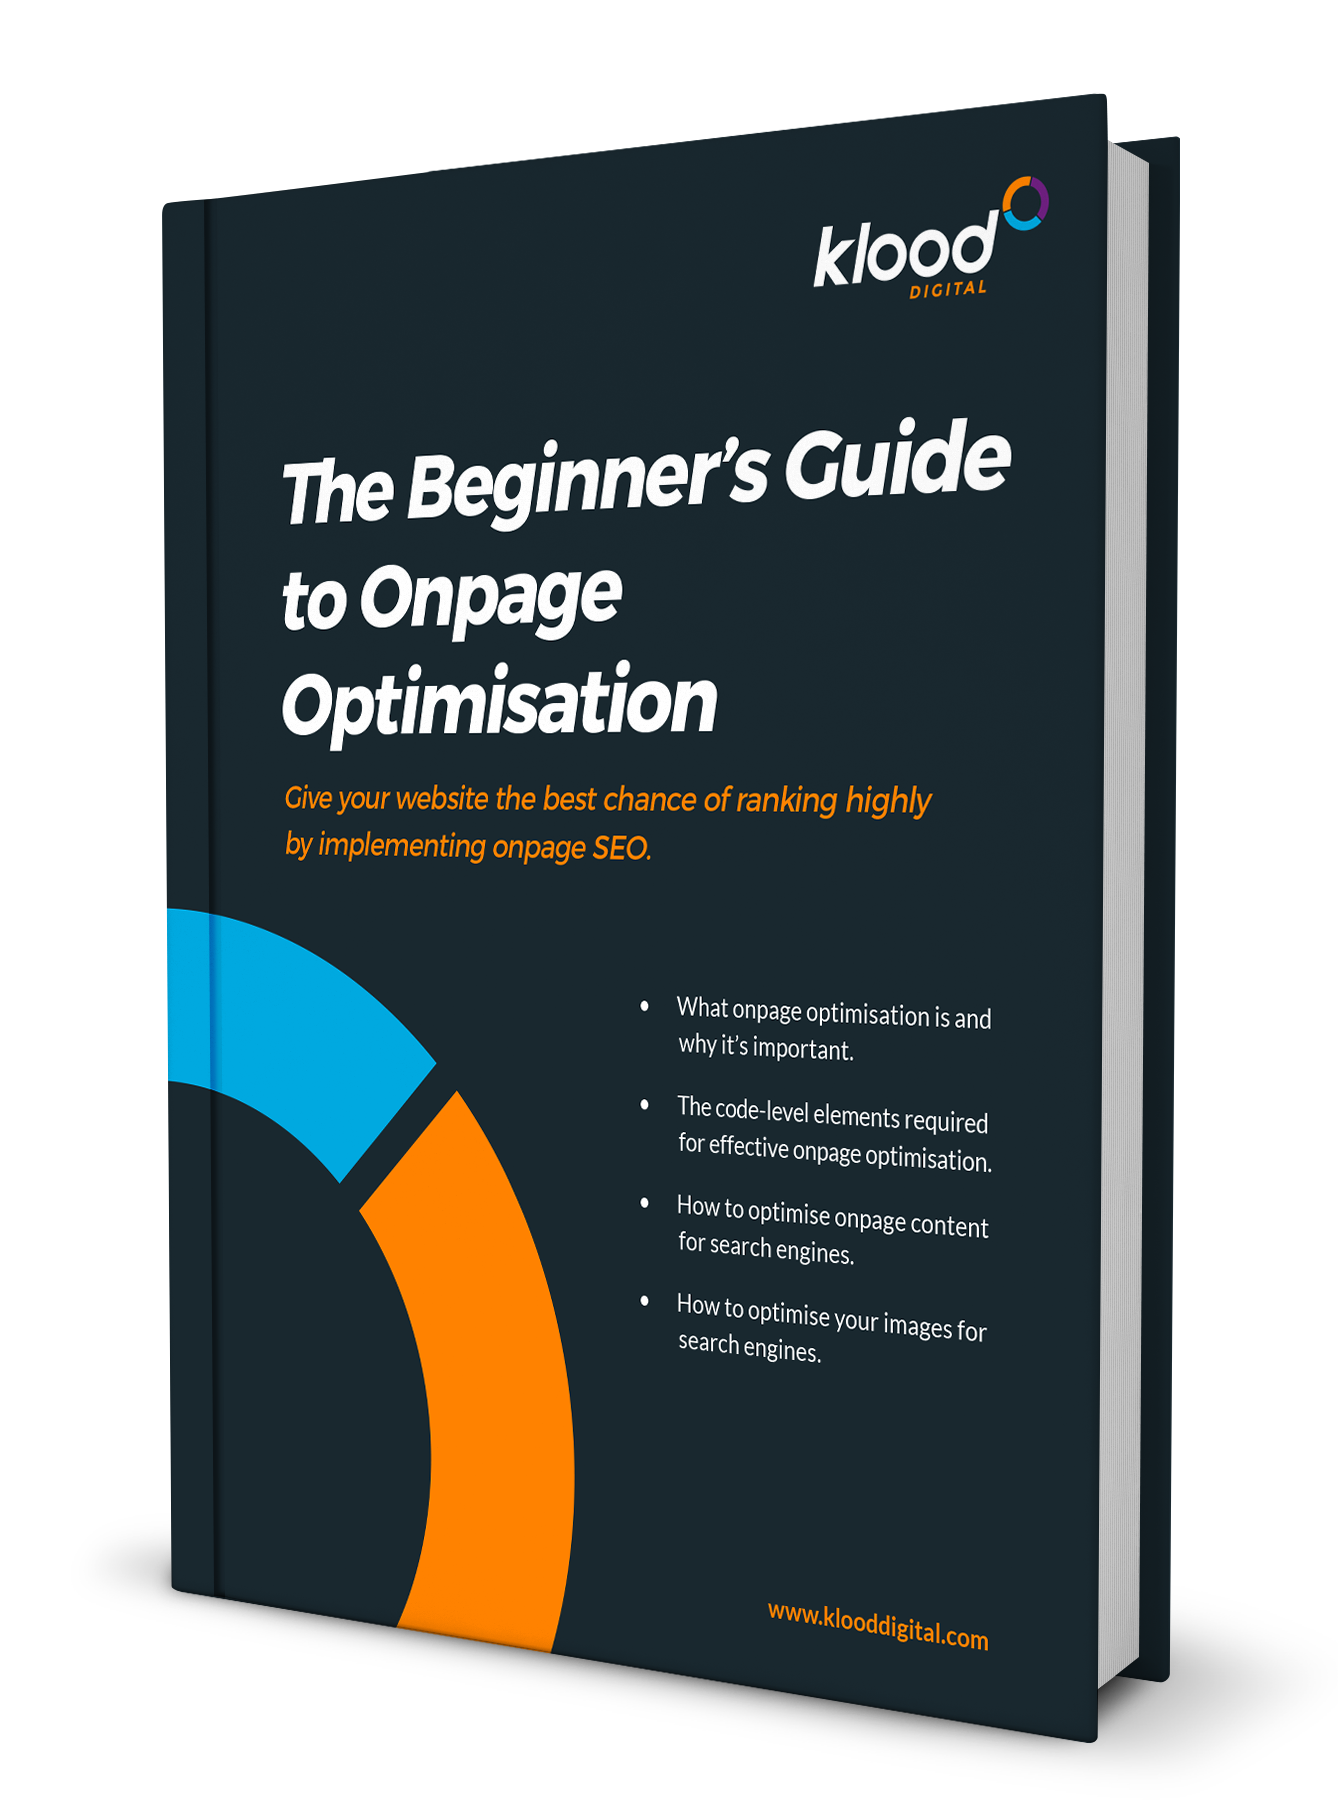 The-Beginners-Guide-to-On-page--SEO-Optimisation-.png